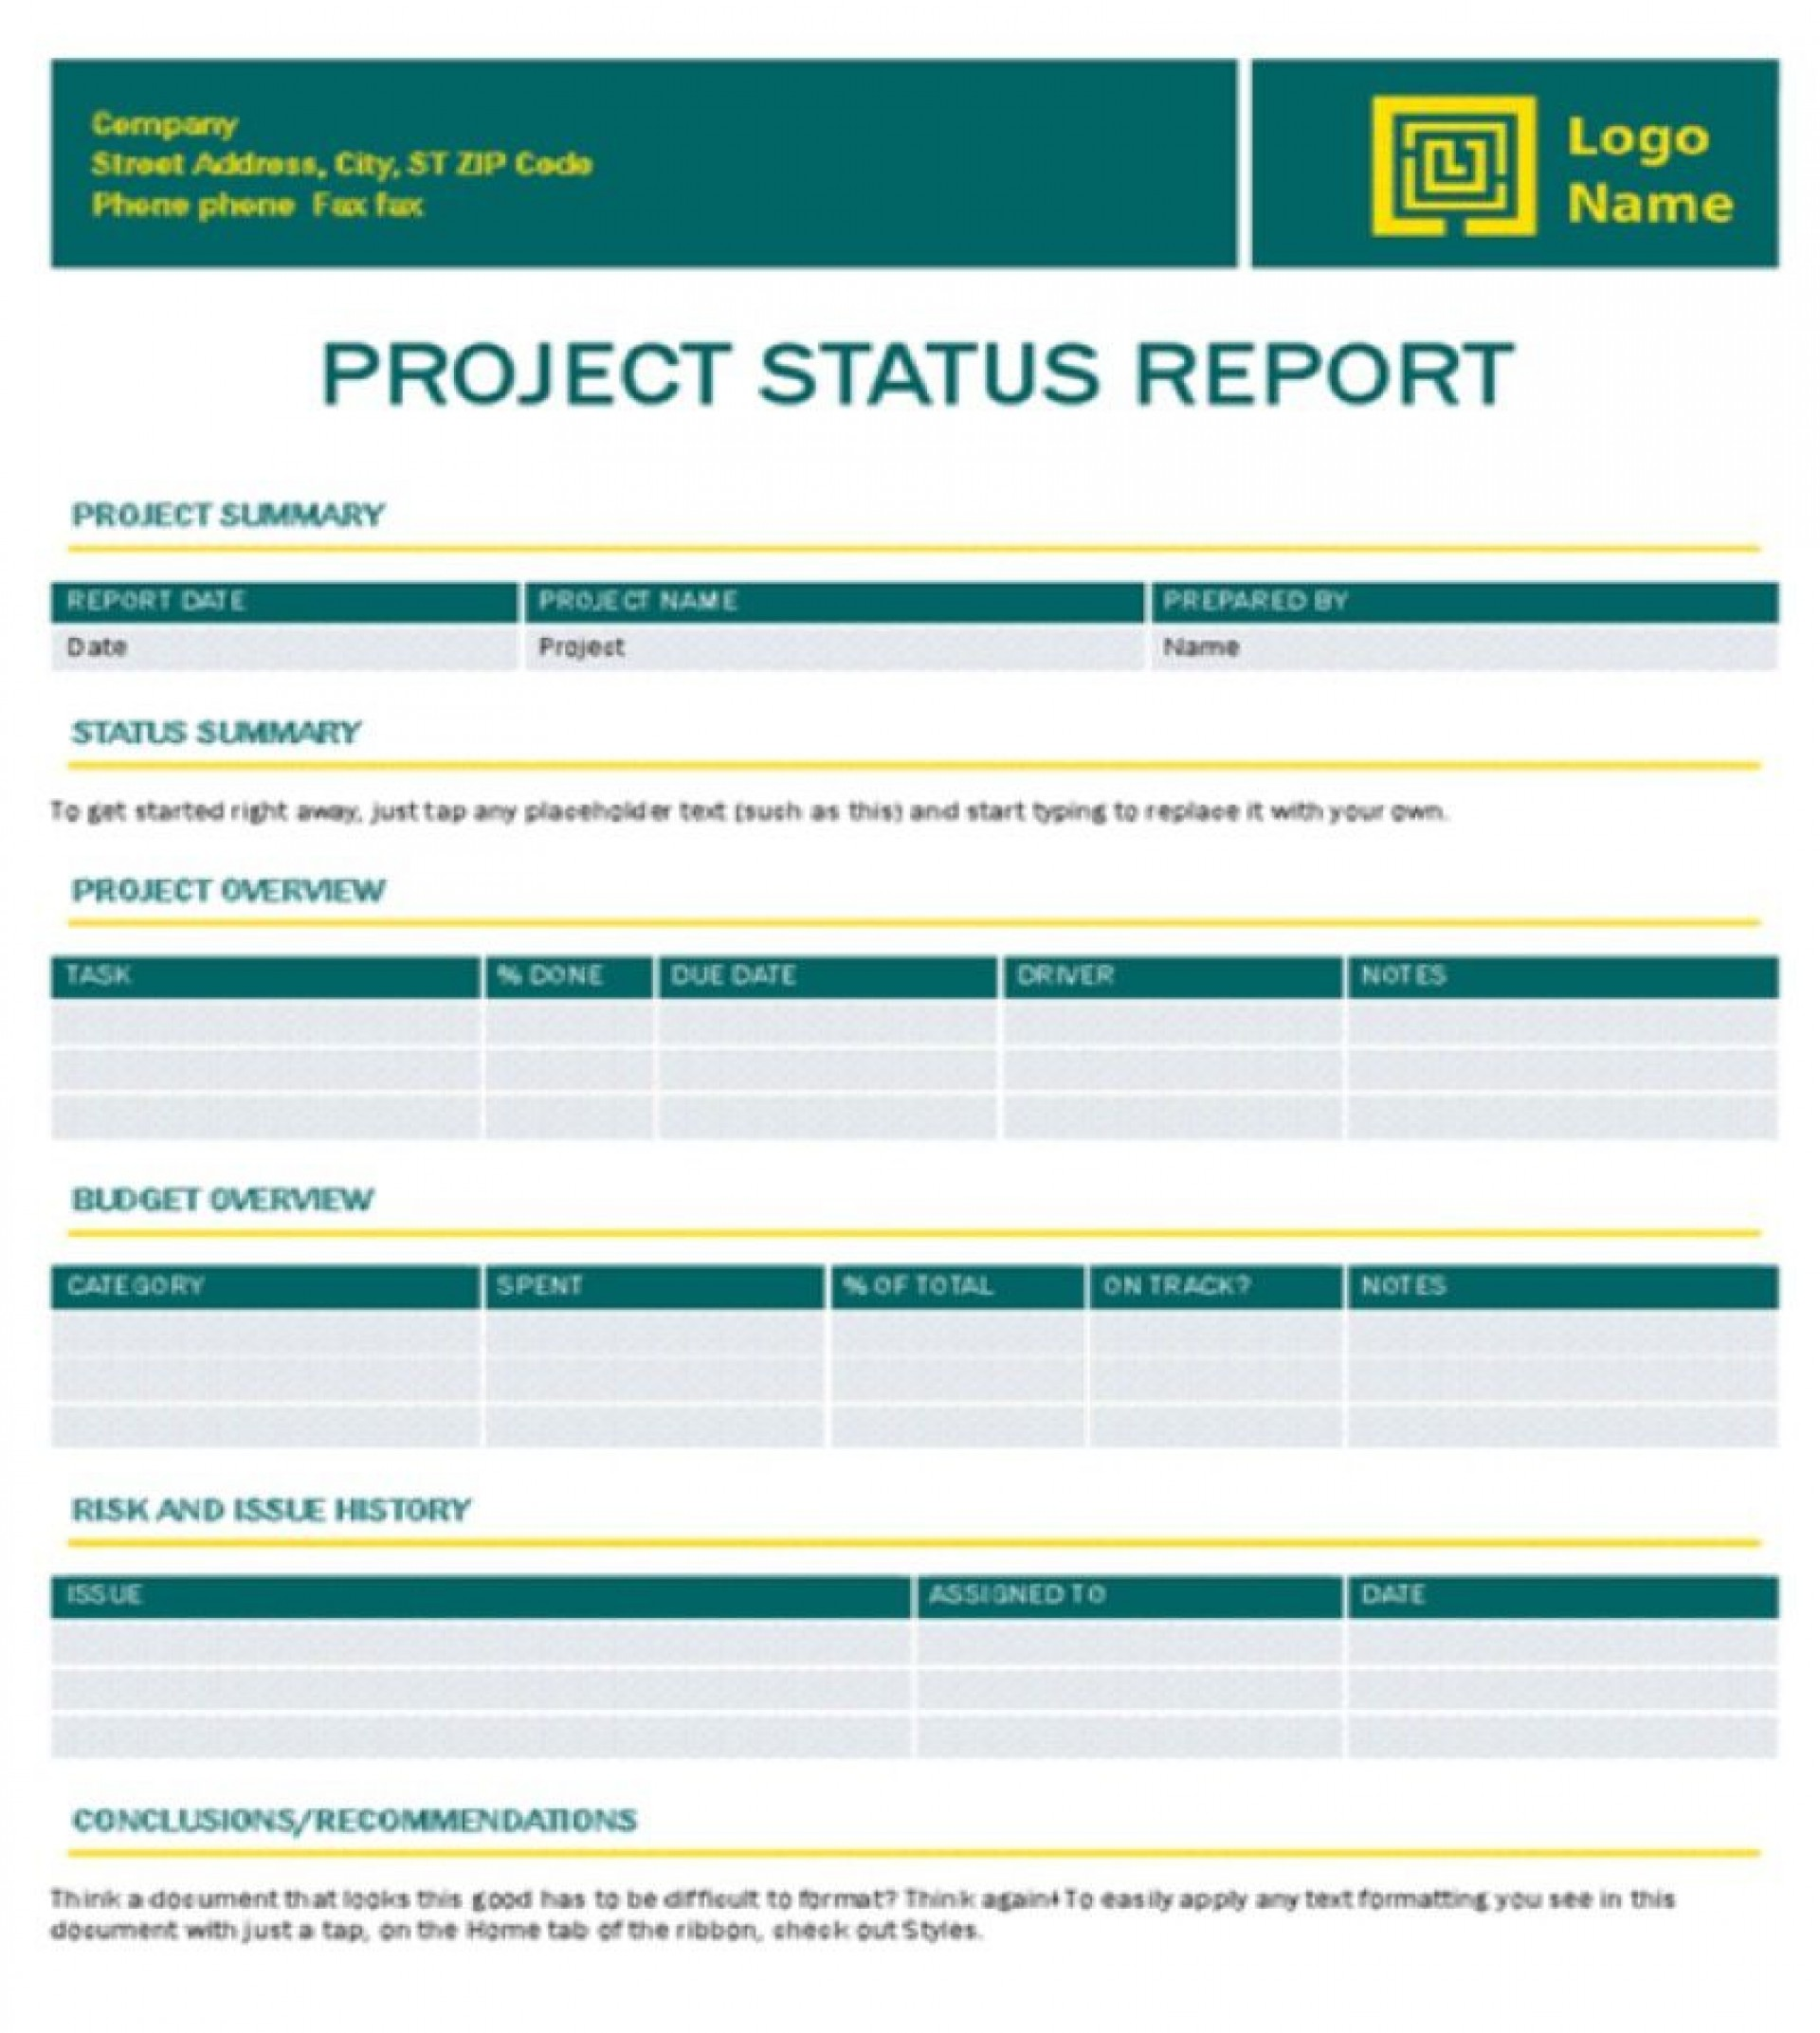 006 Imposing Project Management Weekly Report Template Excel High Def  Statu Progres1920